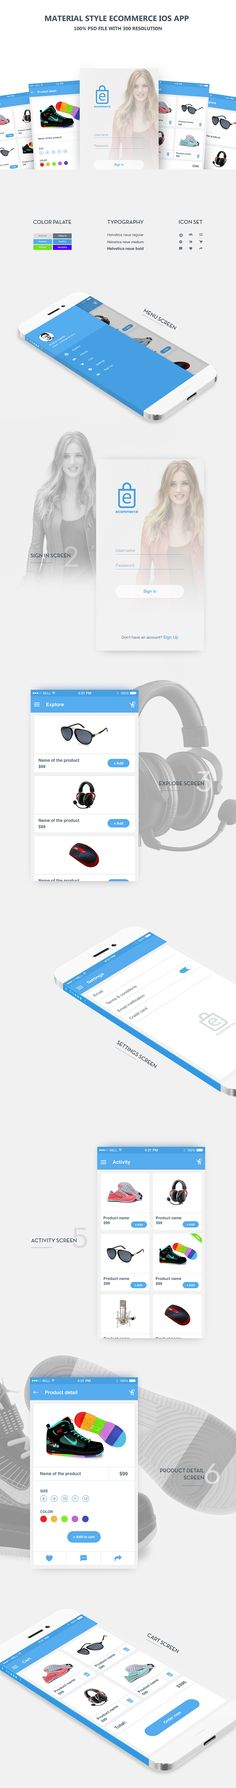 <p>Download Clean Material style eCommerce iOS App Free PSD. A set of 7 Free PSD Material style eCommerce app for iOS. The set includes a handful of the important user interface screens required for e-commerce fashion mobile application. Feel free to use it in your upcoming shopping application projects. Hope you like it. Enjoy!</p>